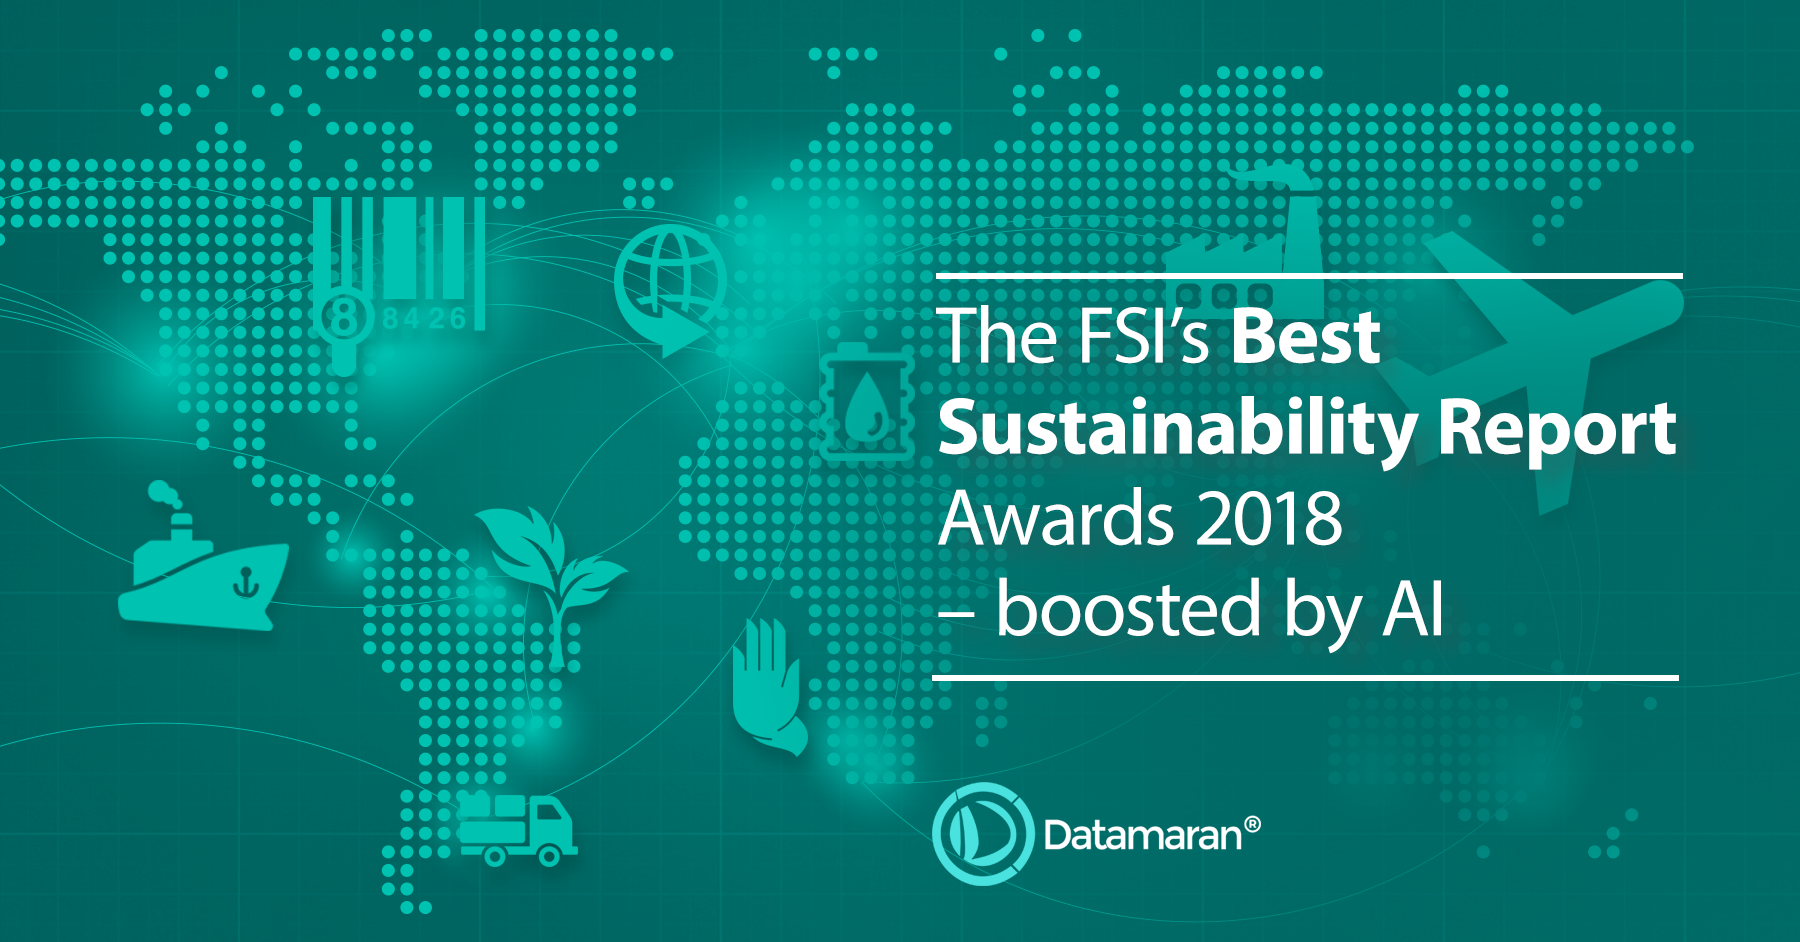 Best Sustainability Report Awards 2018